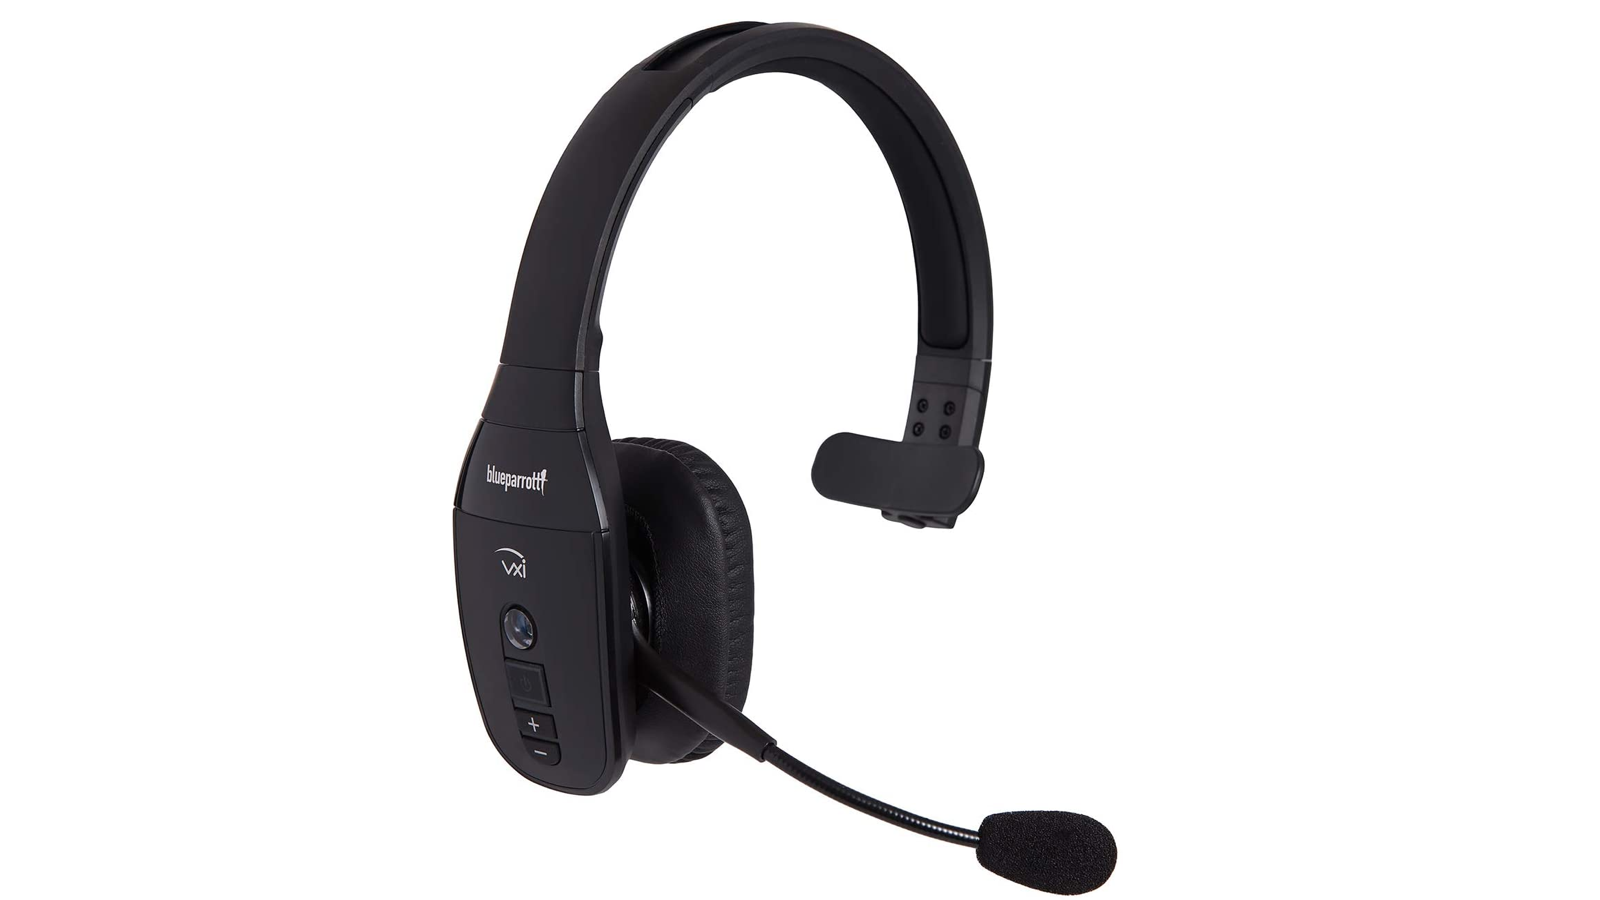 black wireless phone headset with a rounded mic